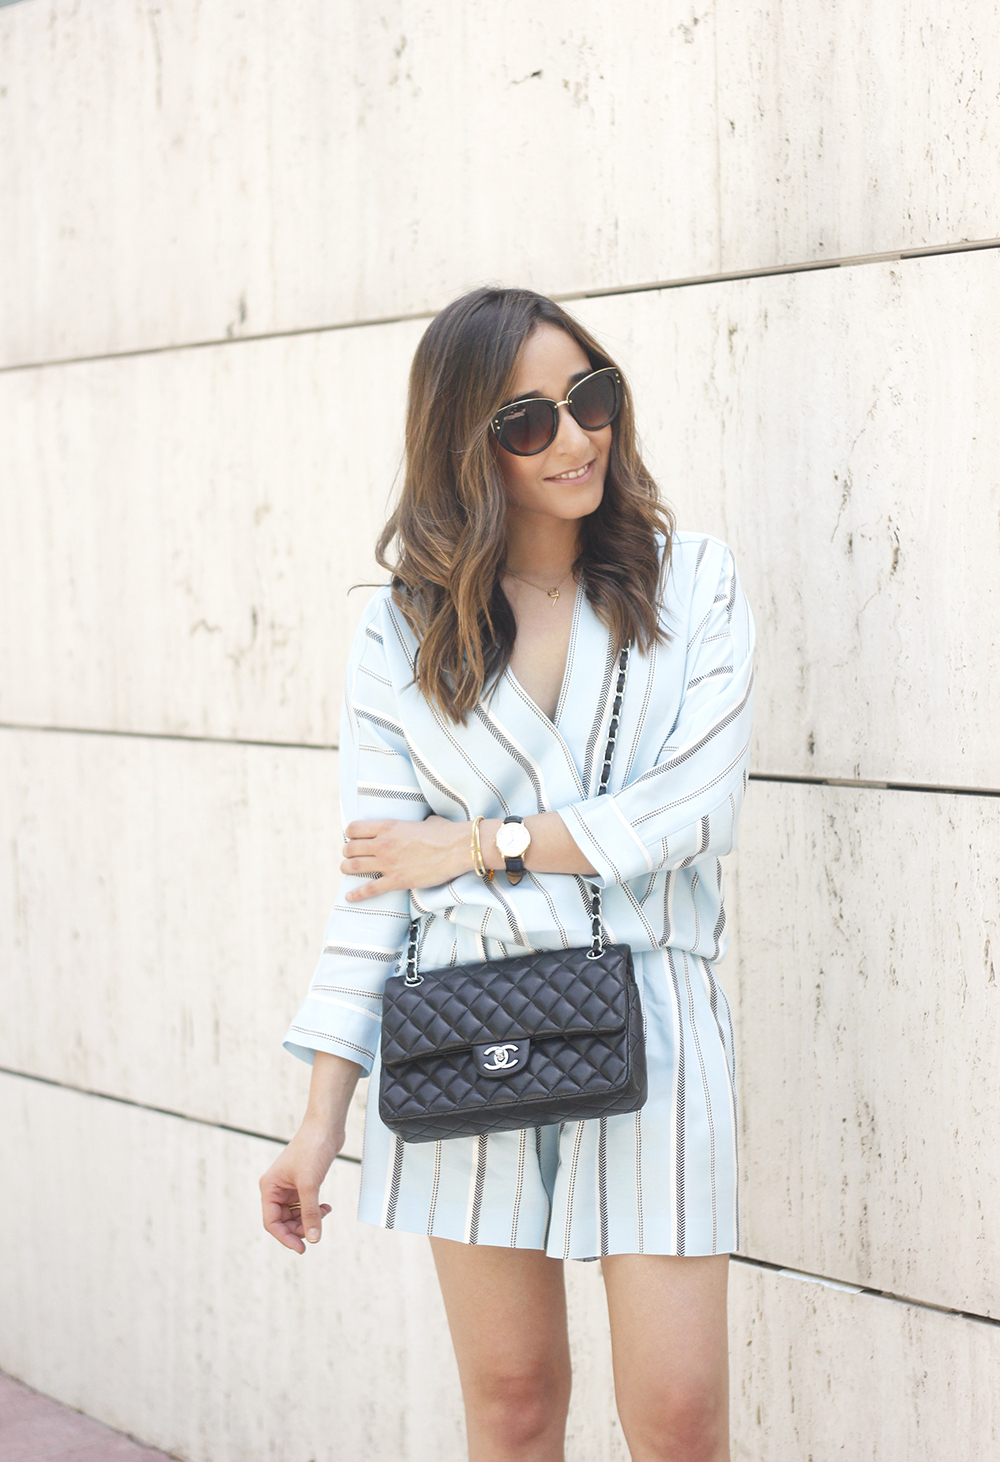 Maje Jumpsuit with stripes black heels chanel bag summer outfit street style fashion09